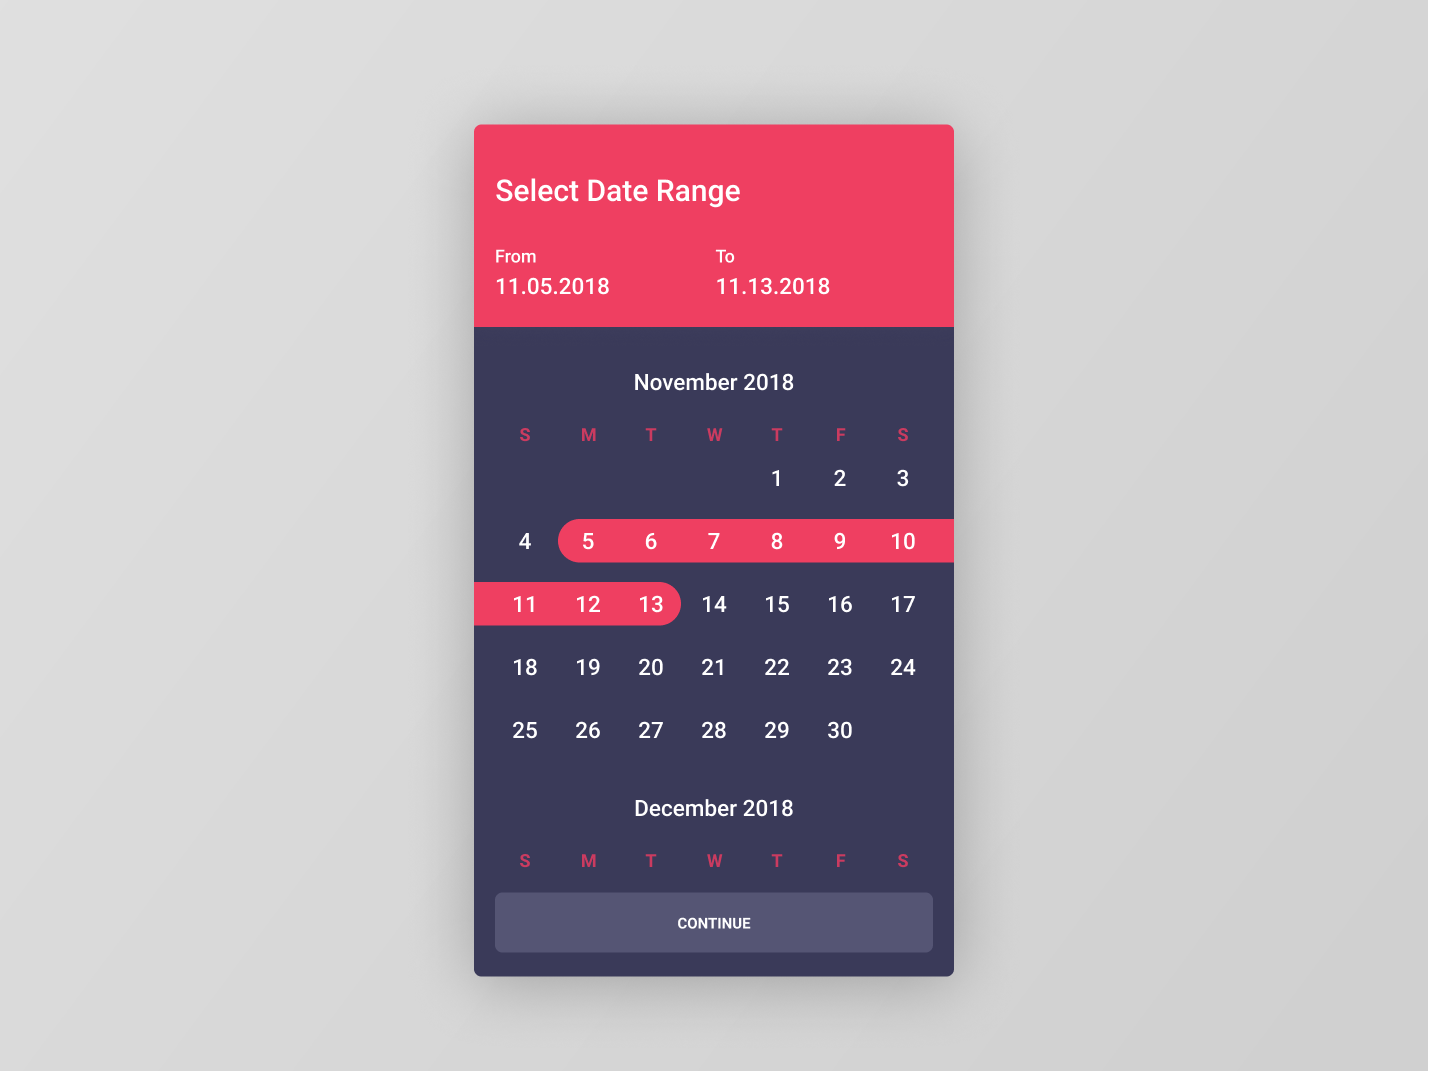 How to Design a Perfect Date Picker Control? - UX Planet